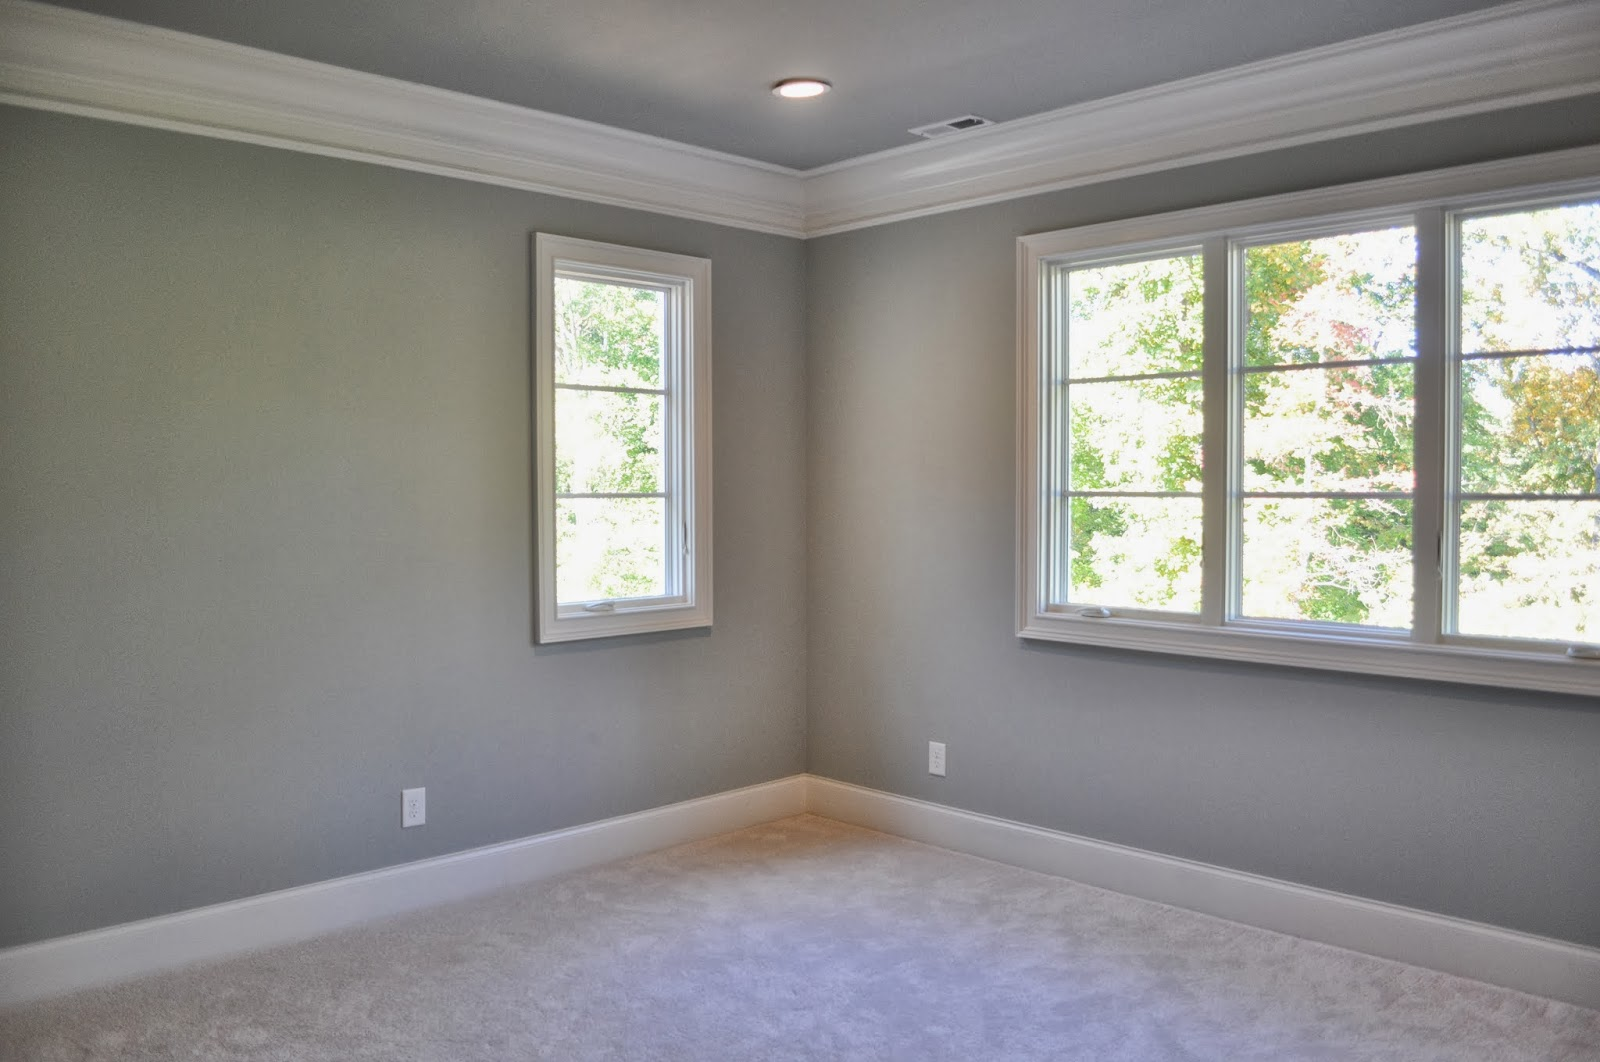 pretty gray wall color in master bedroom